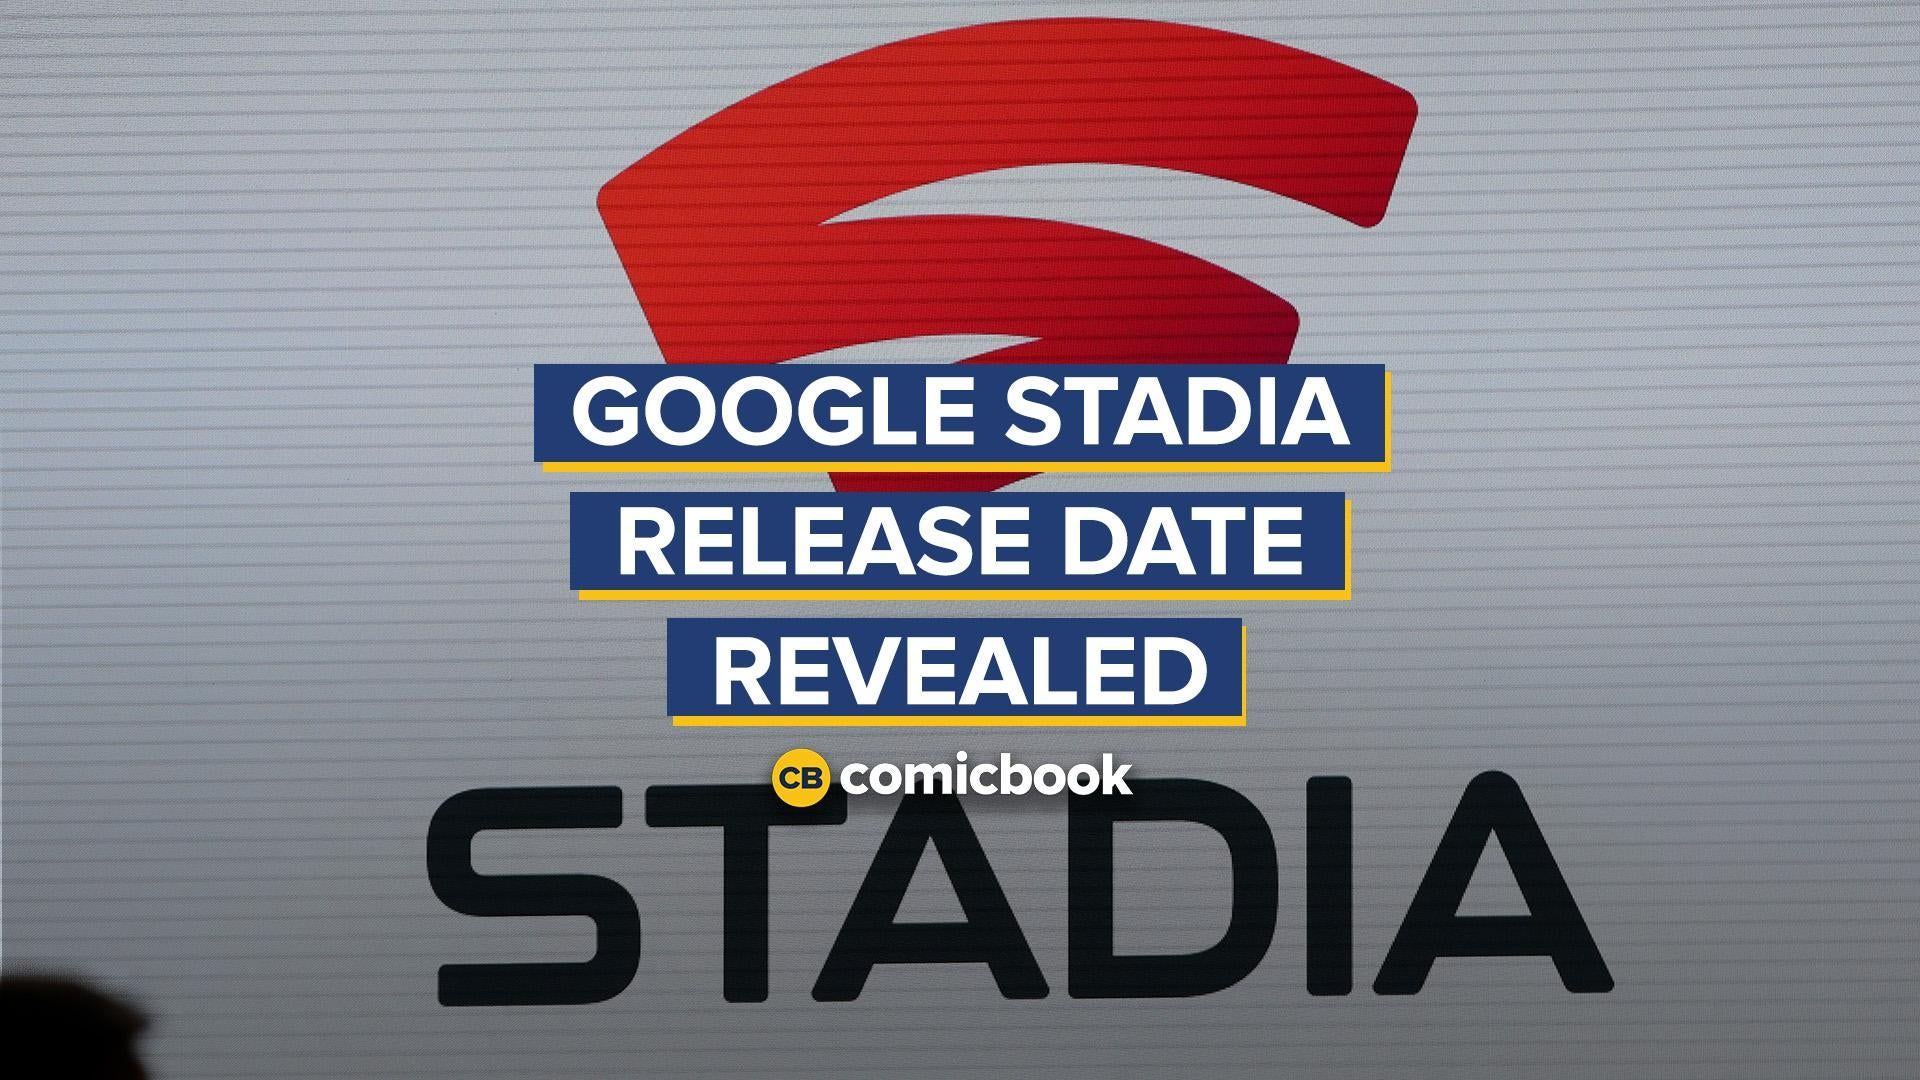 Google Stadia Release Date Revealed screen capture